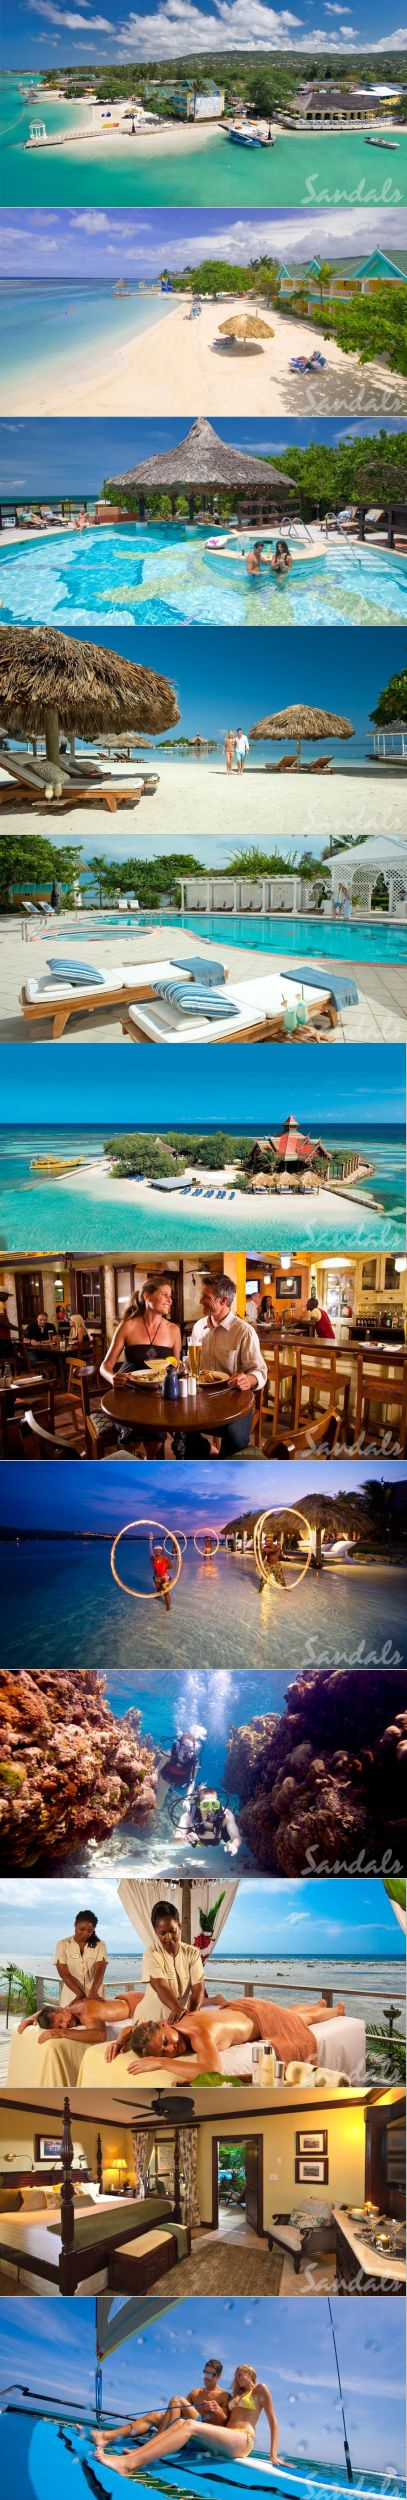 The Top Carribean All Inclusive Resorts For Couples. I may not be able to stay at these resorts, but I would LOVE to vacation here!